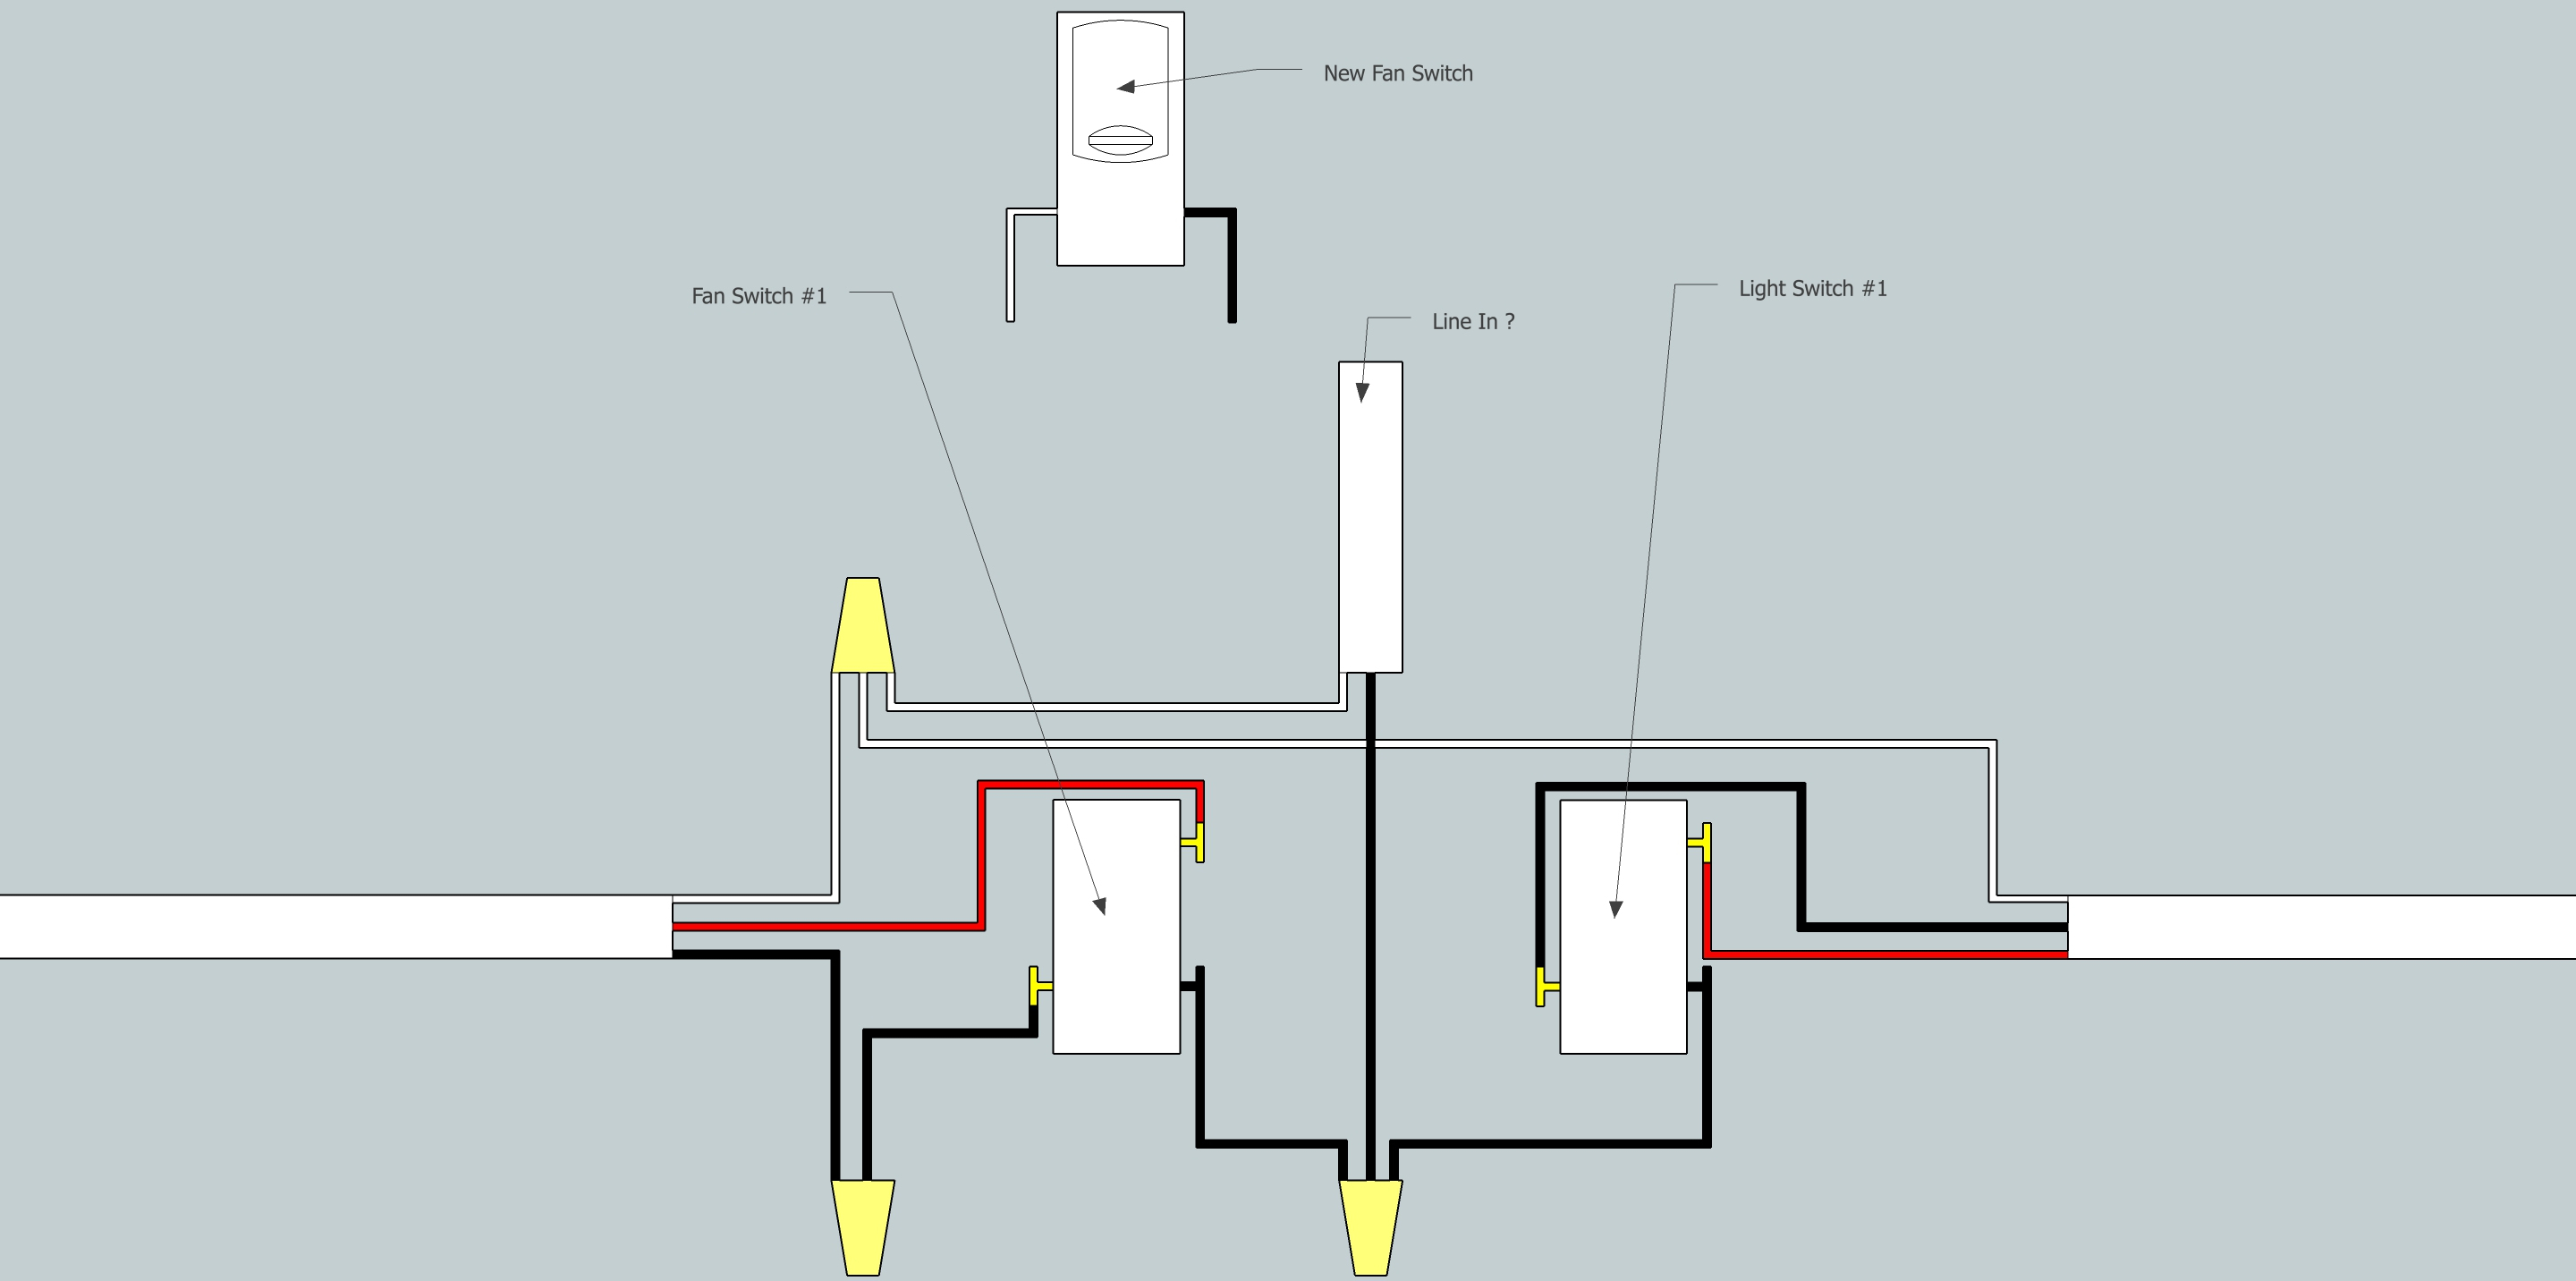 Electrical - Need Help Adding Fan To Existing 3-Way Switch Setup - Three Way Switch Wiring Diagram